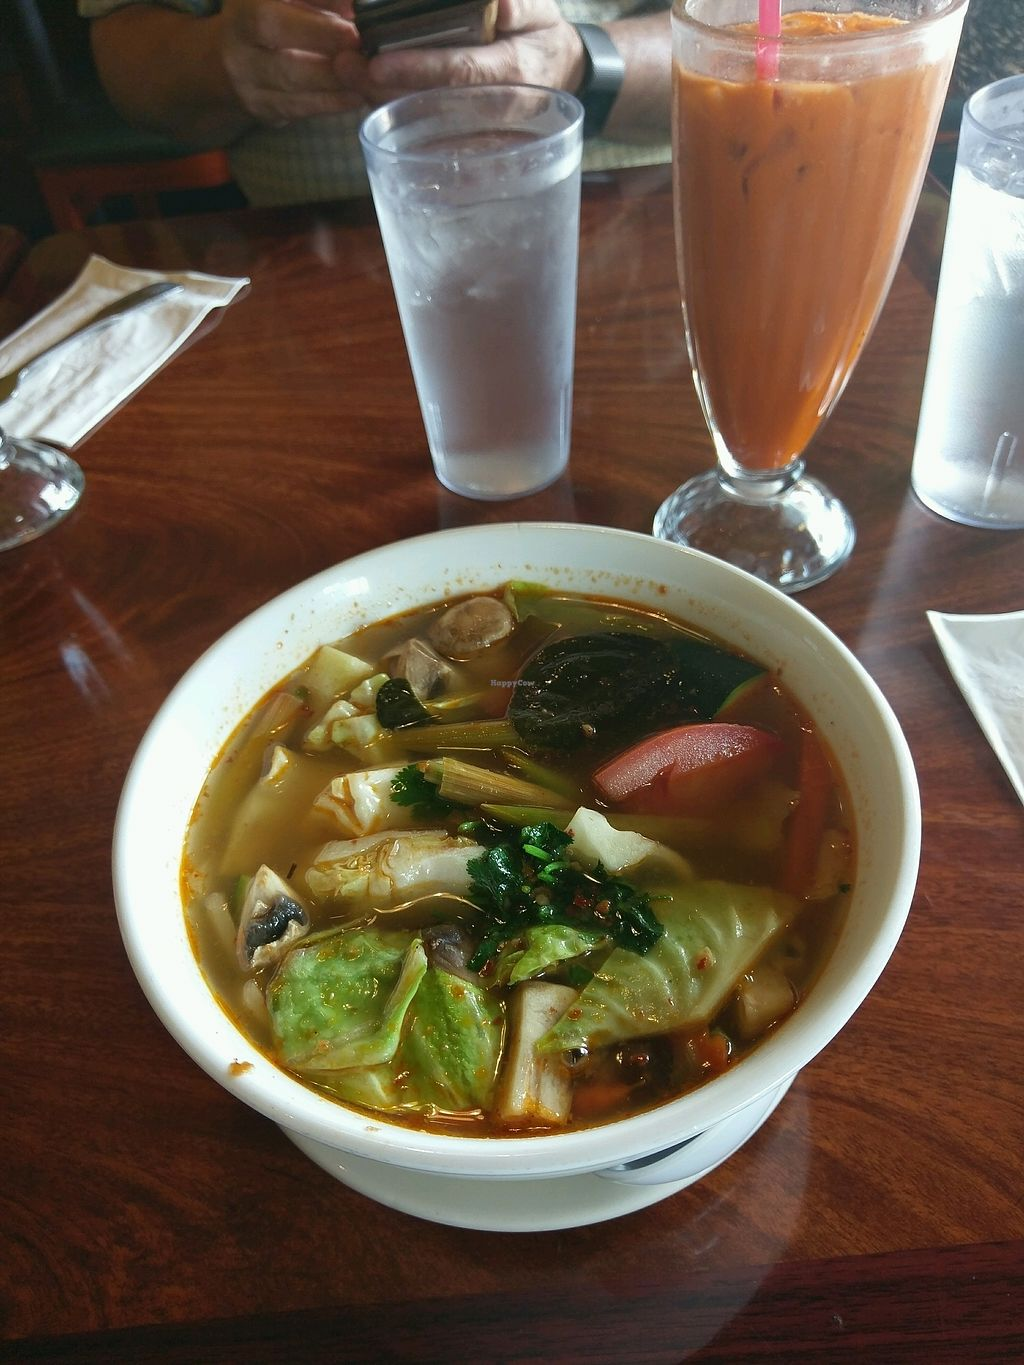 "Photo of Bangkok Garden  by <a href=""/members/profile/jade.vegan"">jade.vegan</a> <br/>Tom yung soup (from the vegan menu!!) <br/> March 30, 2018  - <a href='/contact/abuse/image/107792/378120'>Report</a>"